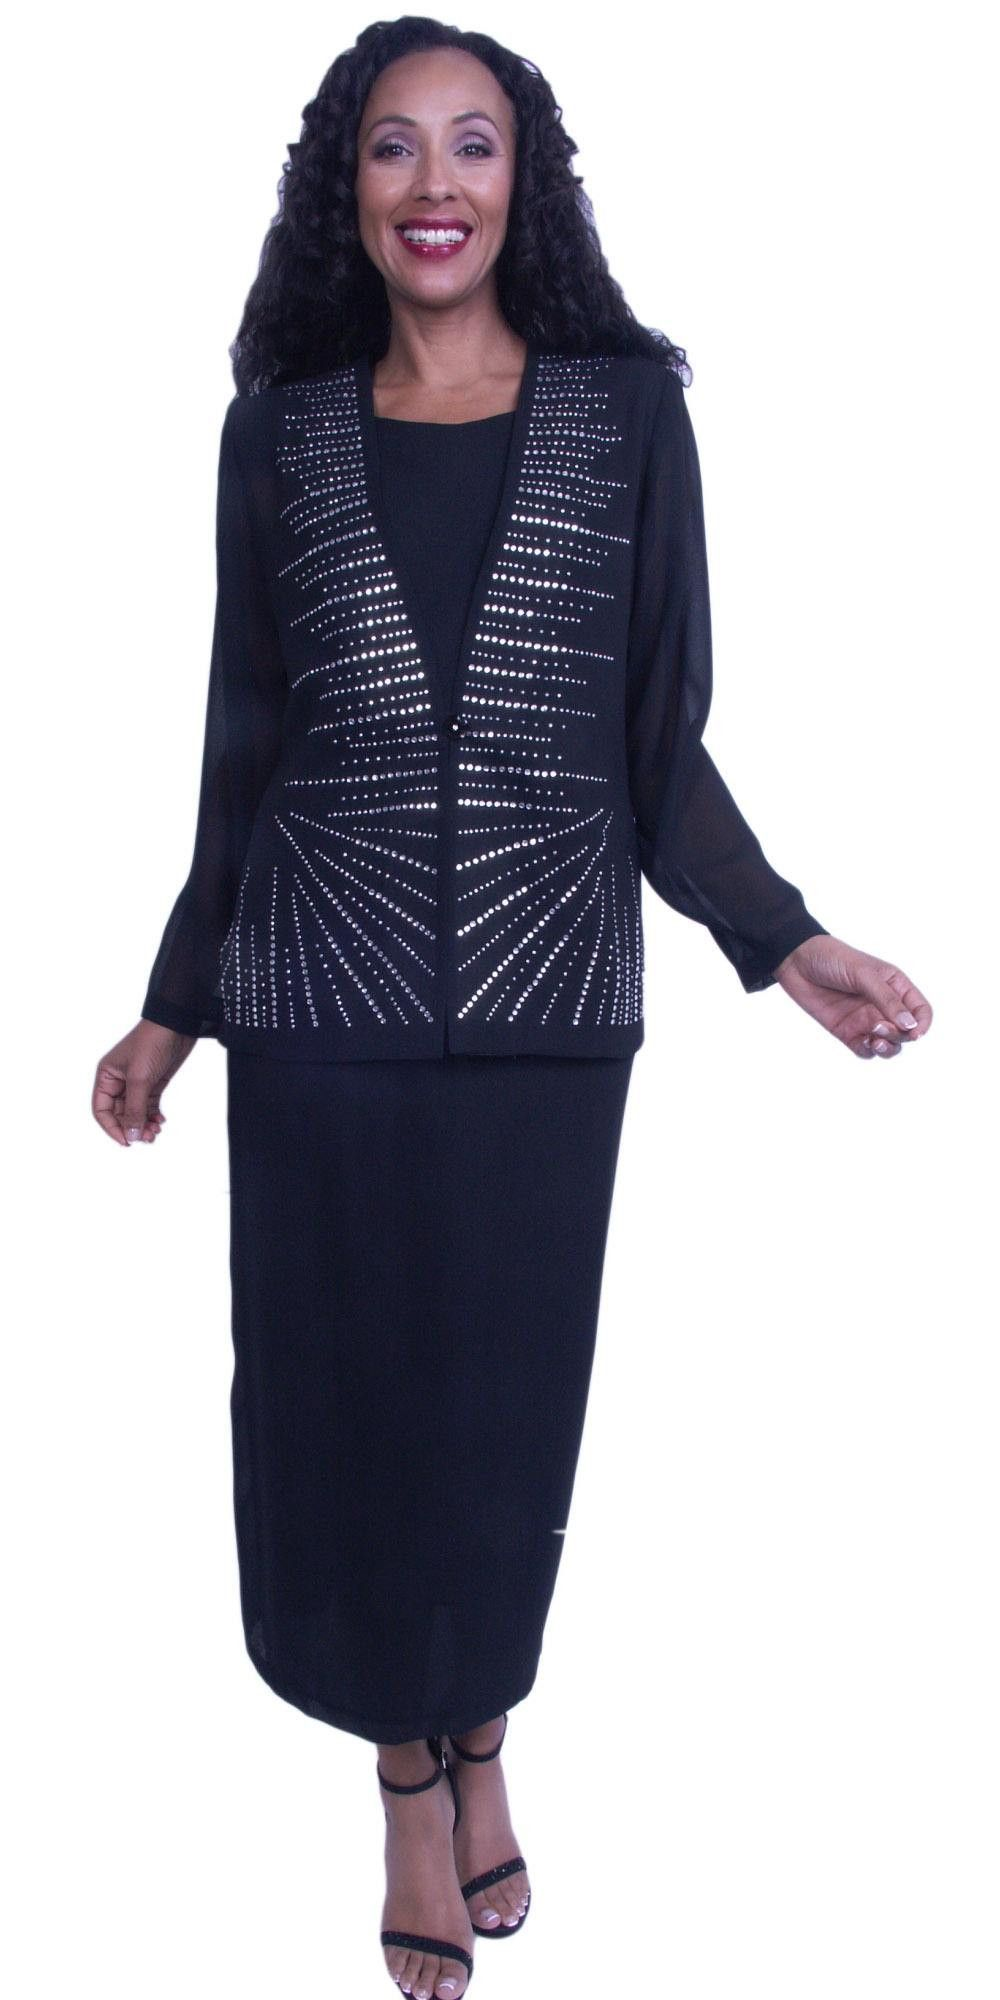 Hosanna black plus size formal dress long sleeve embellished